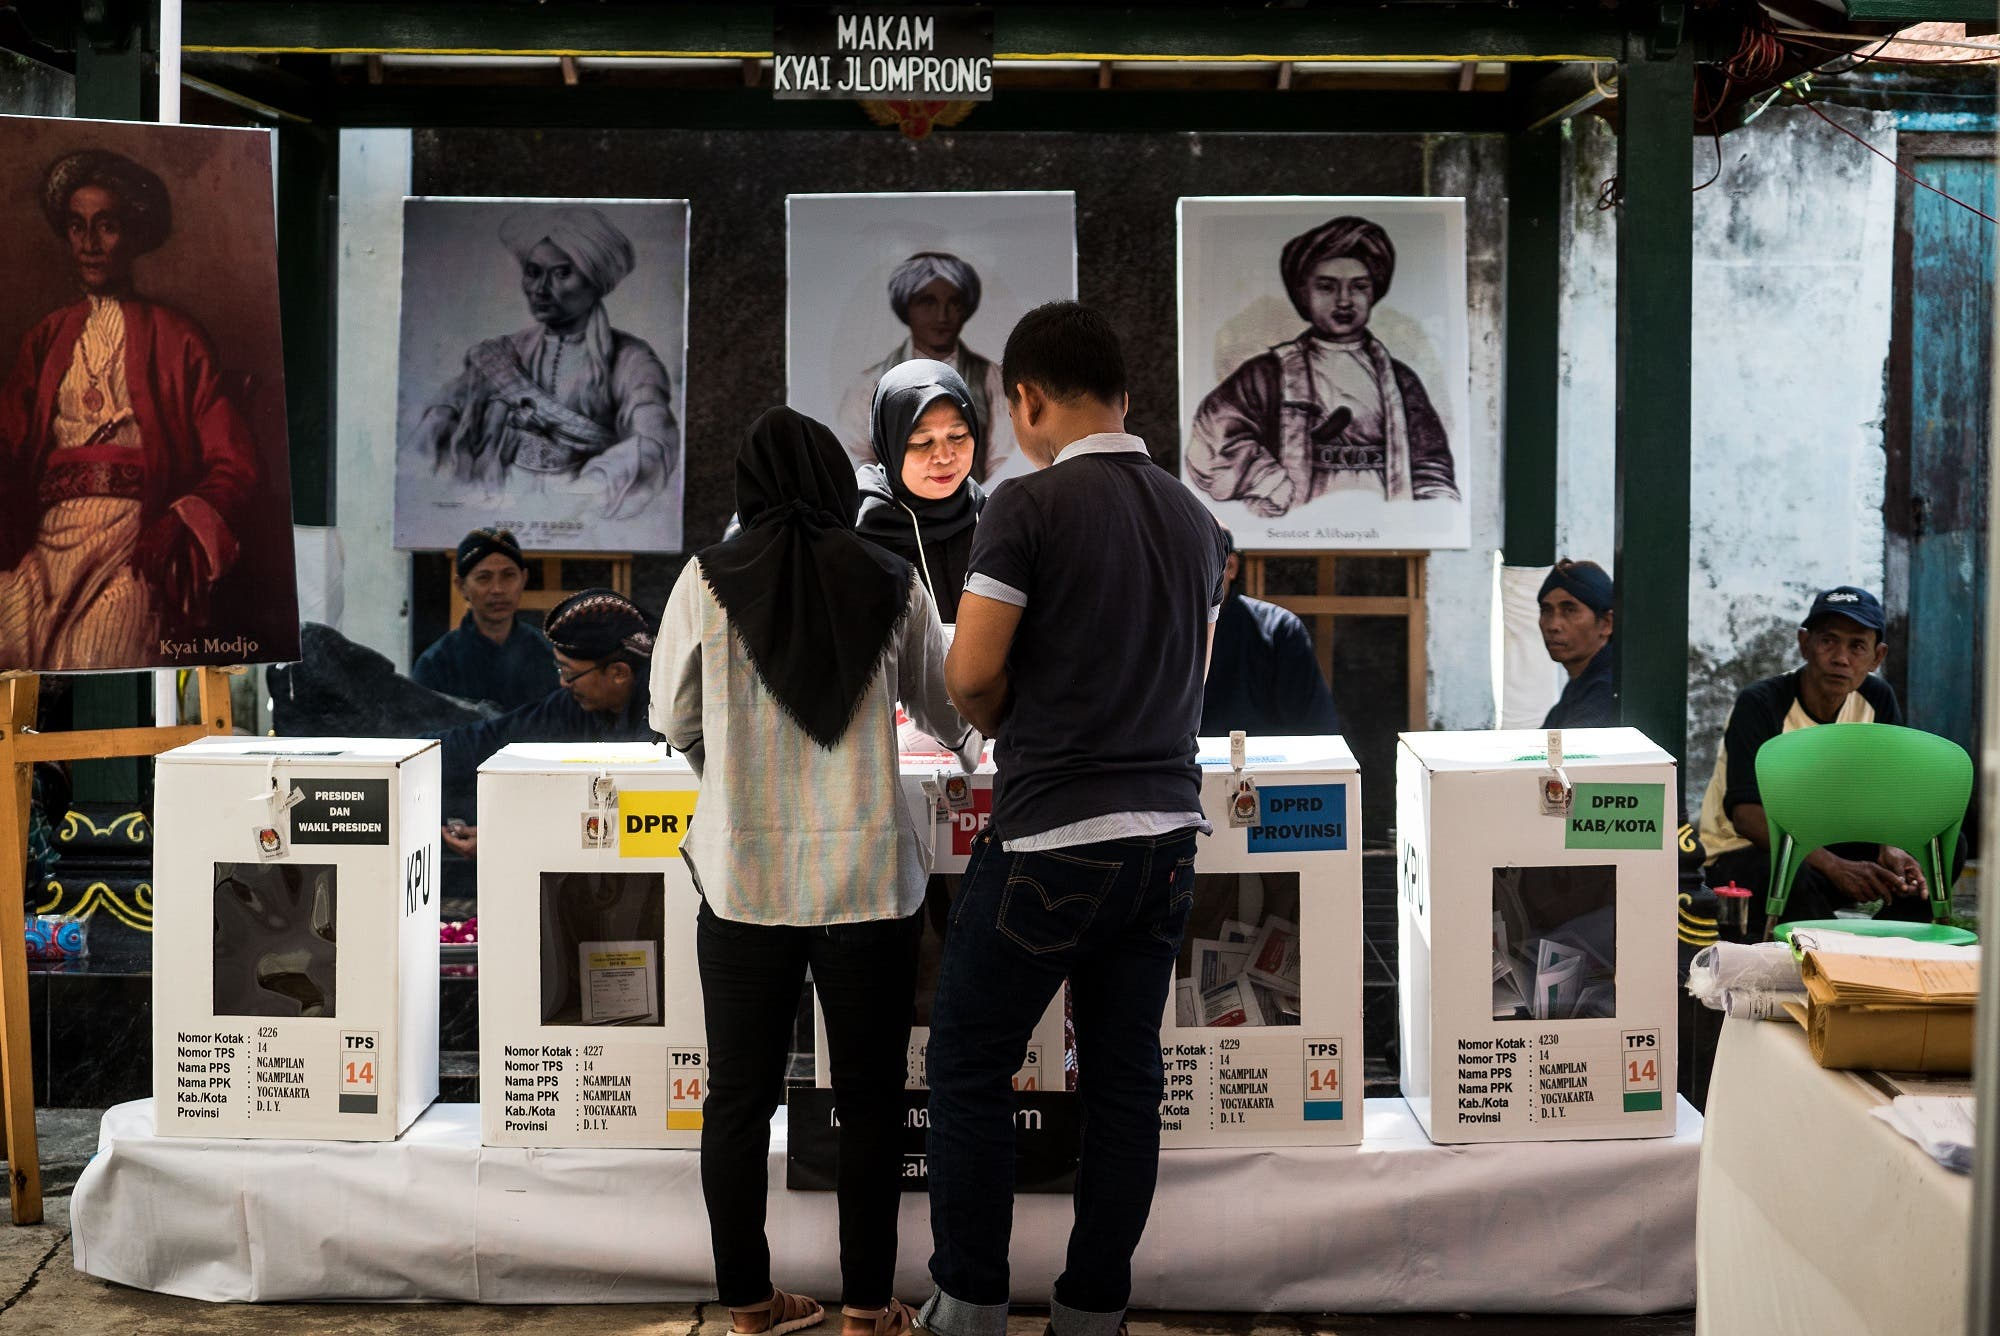 People cast their votes at a polling station during Indonesia's general election in Yogyakarta on April 17, 2019. (AFP)